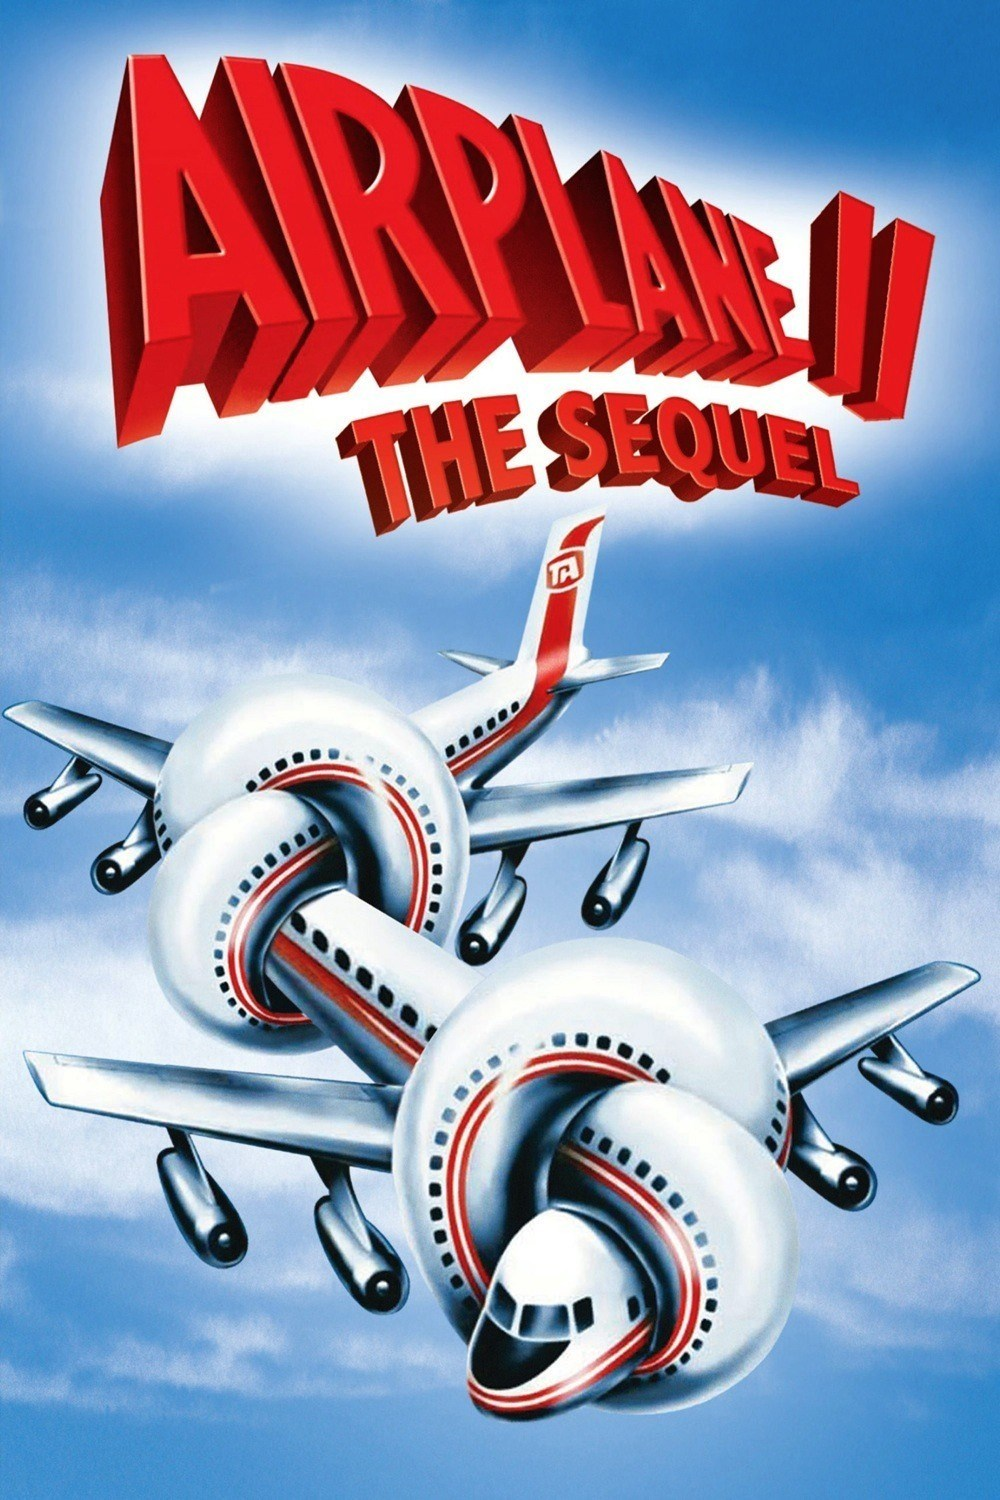 Airplane II: The Sequel Subscene Subtitles for Airplane II The Sequel